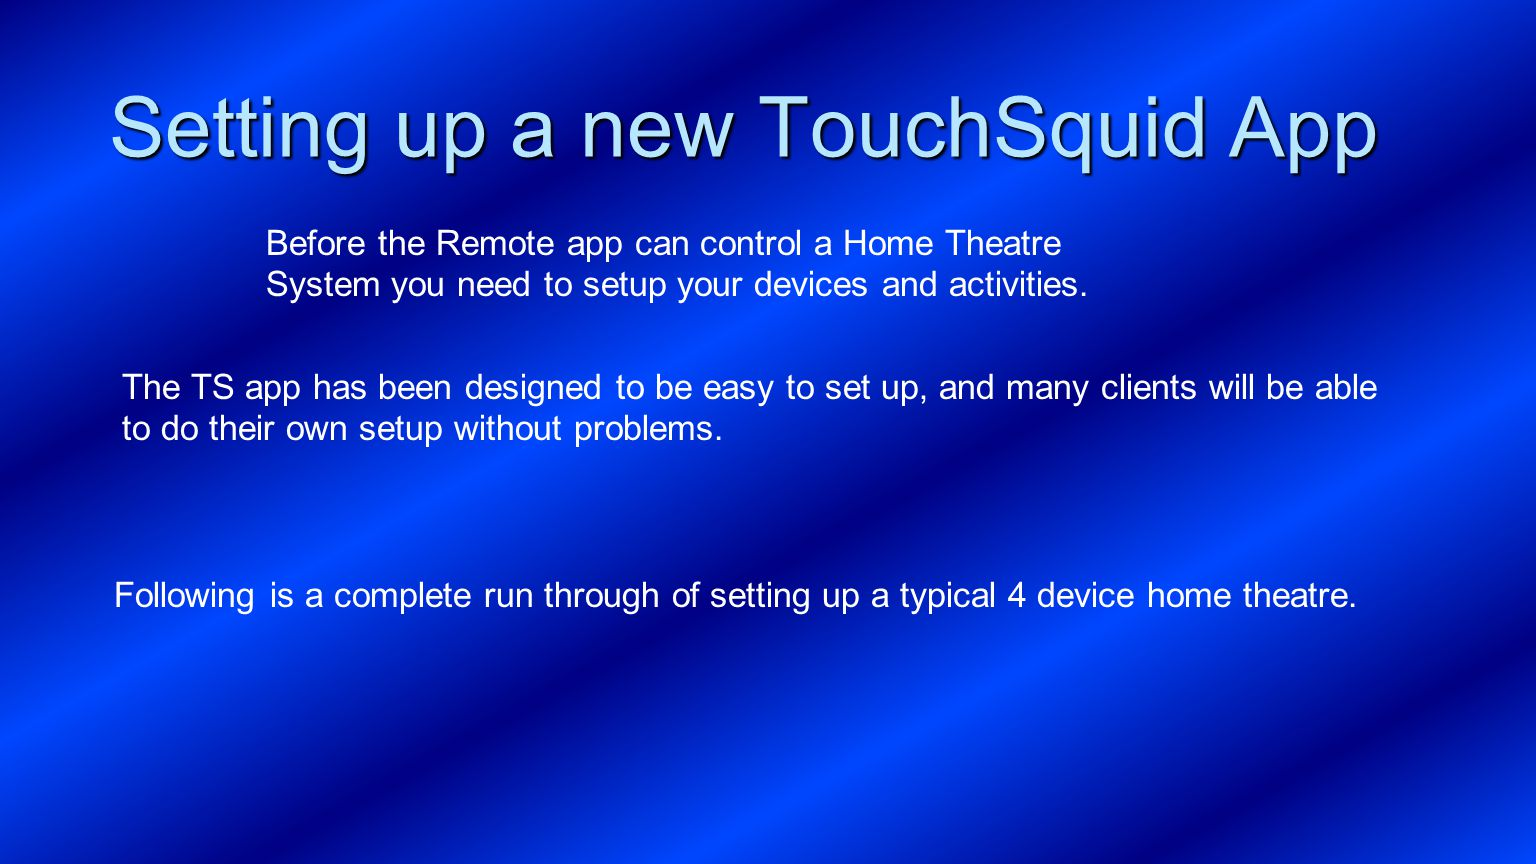 Setting up a new TouchSquid App Before the Remote app can control a Home Theatre System you need to setup your devices and activities.